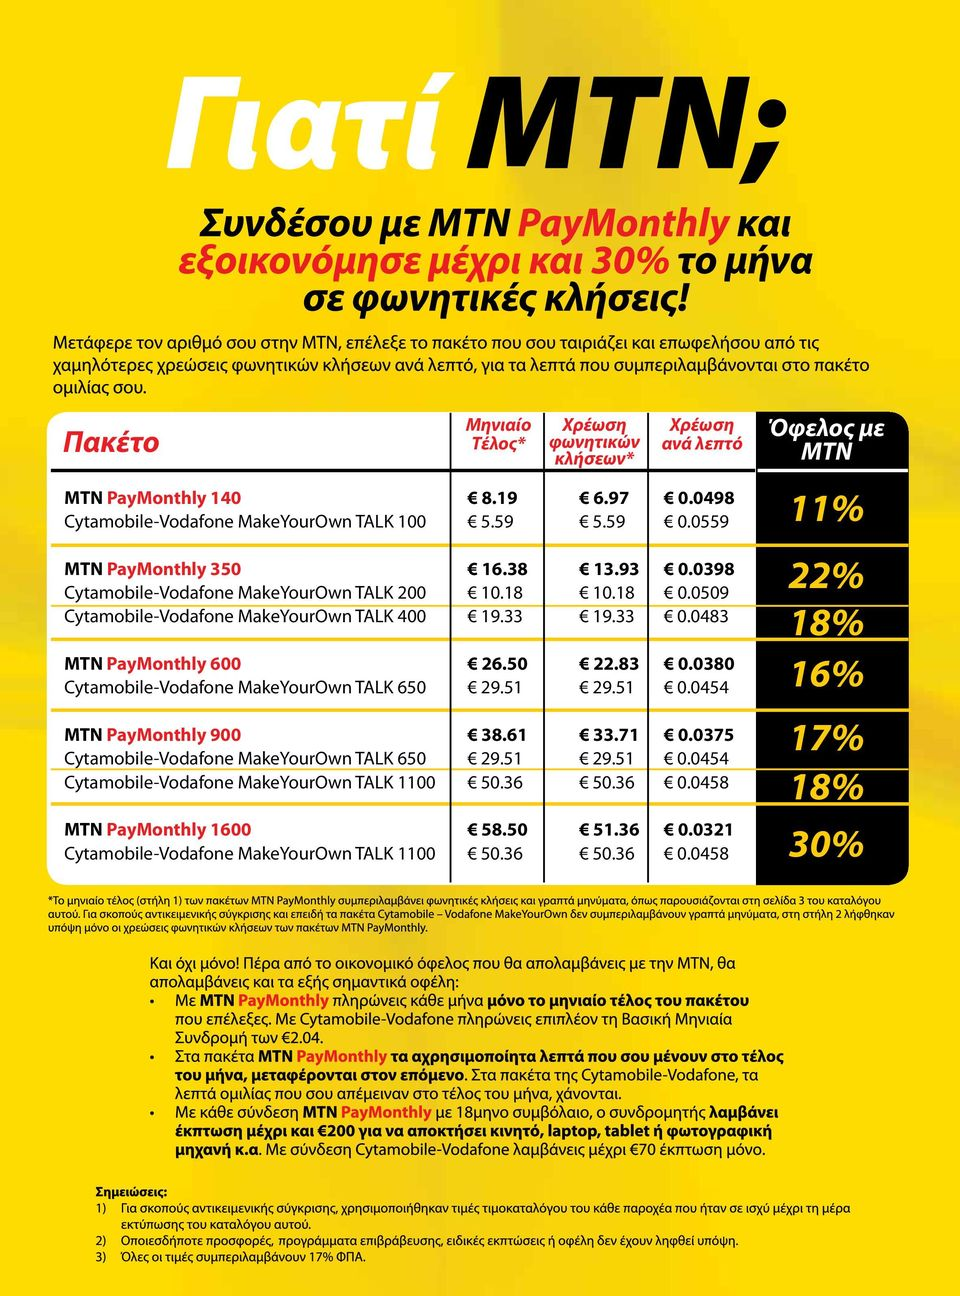 0380 Cytamobile-Vodafone MakeYourOwn TALK 650 29.51 29.51 0.0454 MTN PayMonthly 900 38.61 33.71 0.0375 Cytamobile-Vodafone MakeYourOwn TALK 650 29.51 29.51 0.0454 Cytamobile-Vodafone MakeYourOwn TALK 1100 50.